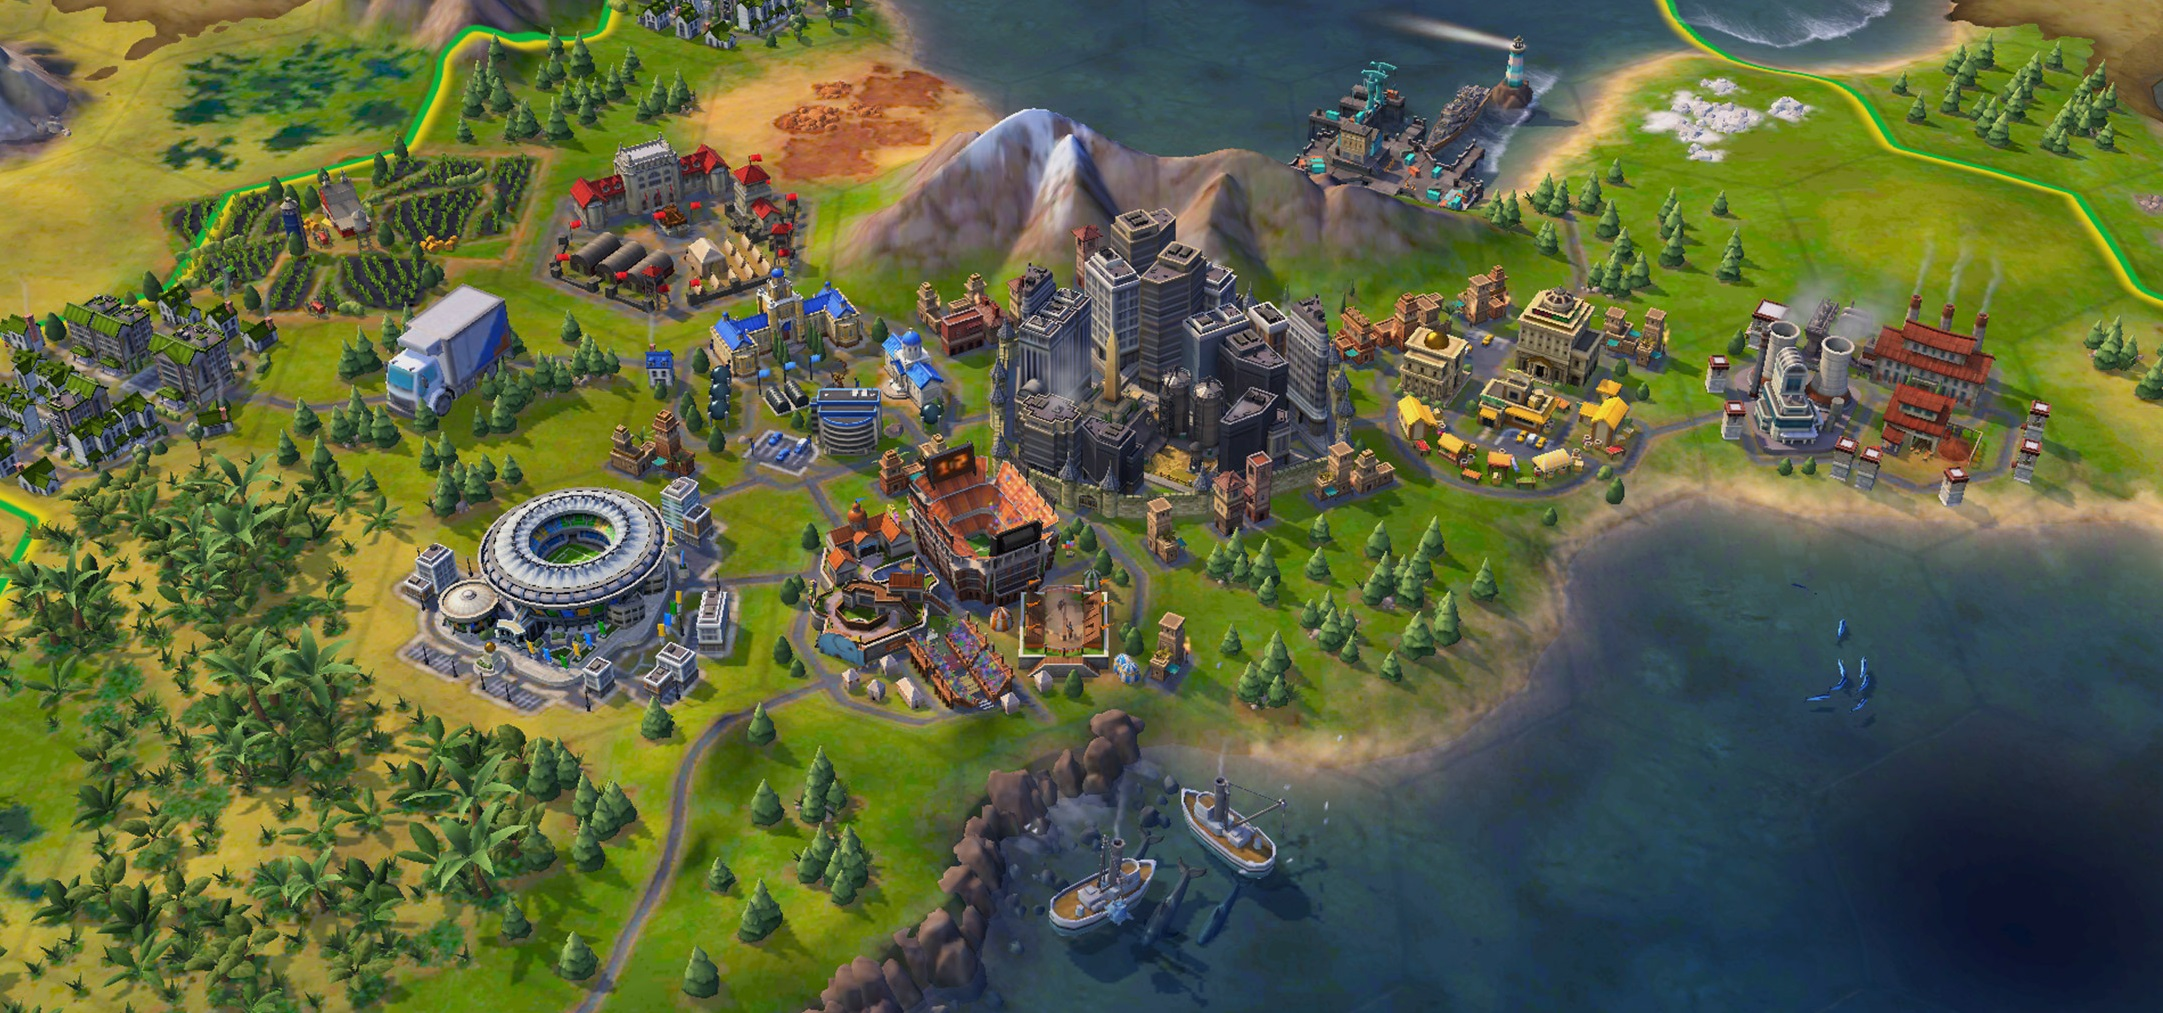 Civilization 6 on iPhone is a near-perfect port of the original PC game